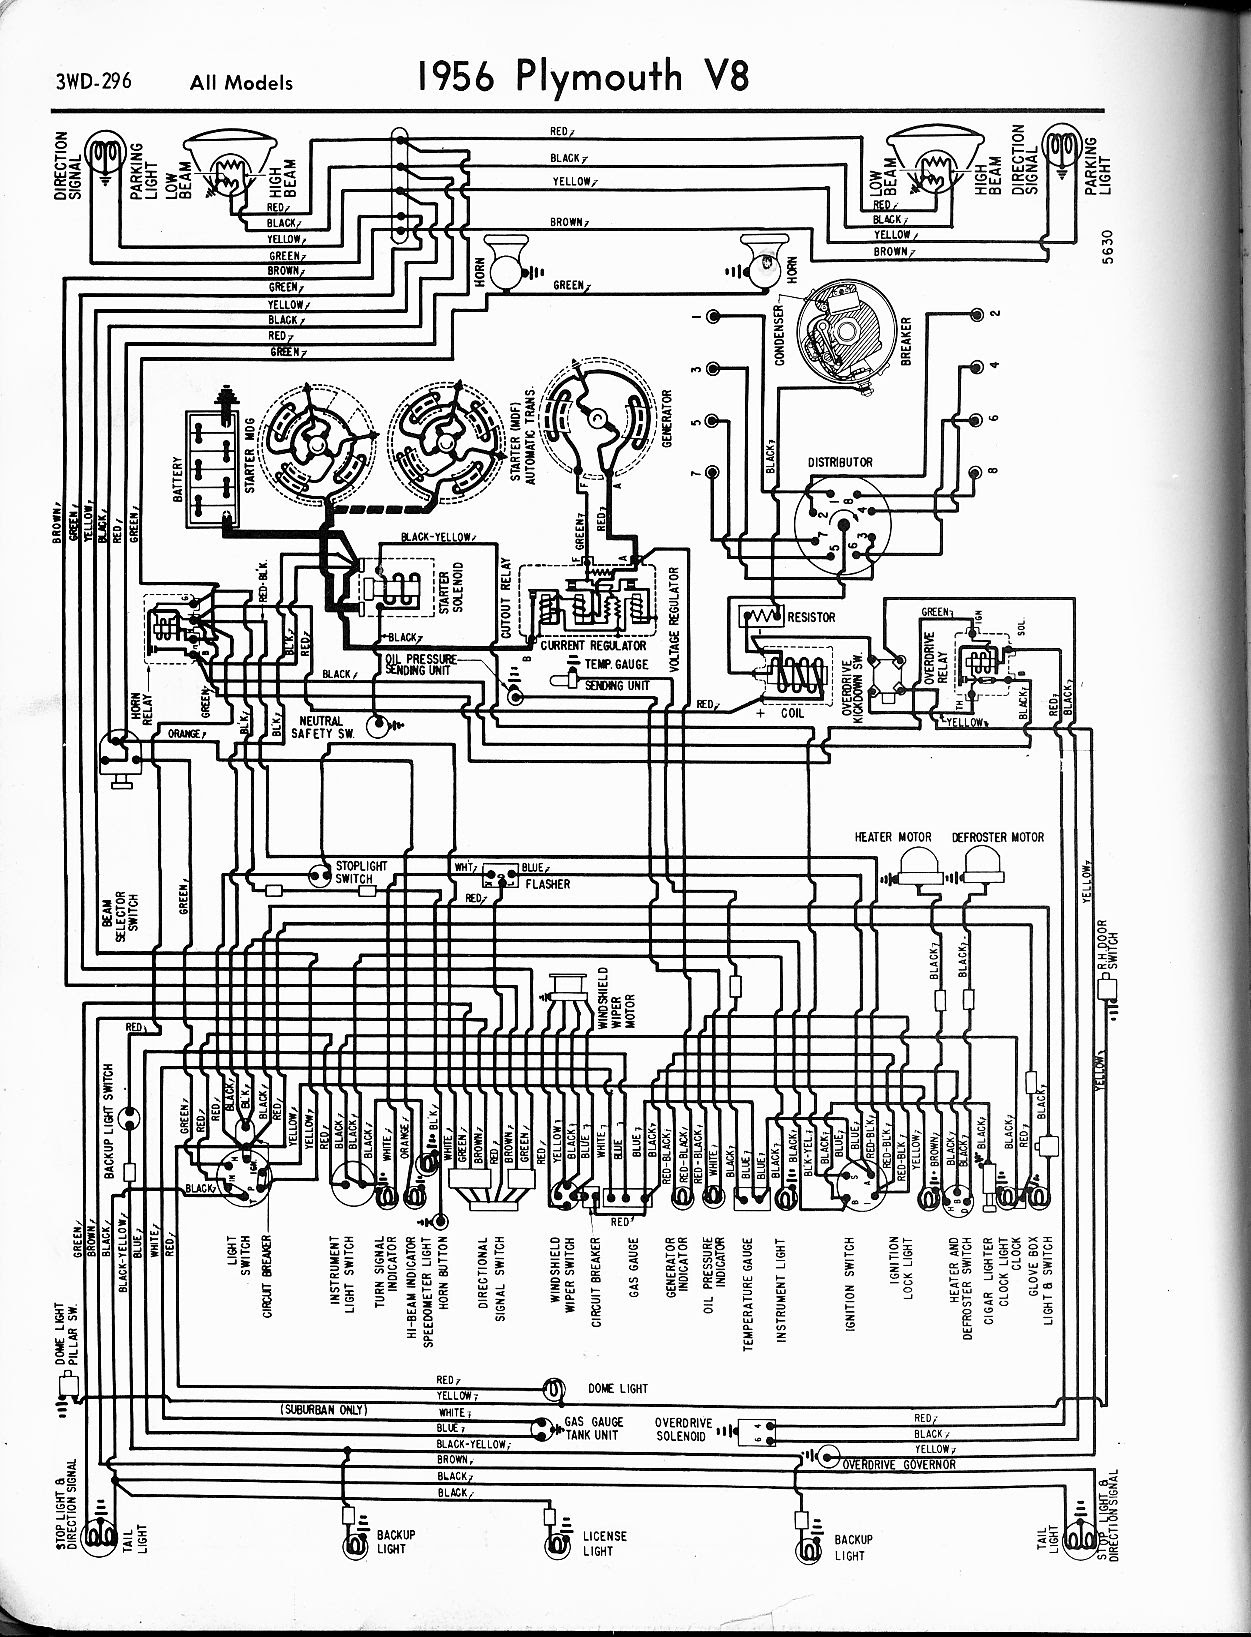 1956 Chrysler Wiring Diagram Wiring Diagram Aperture A Aperture A Zaafran It